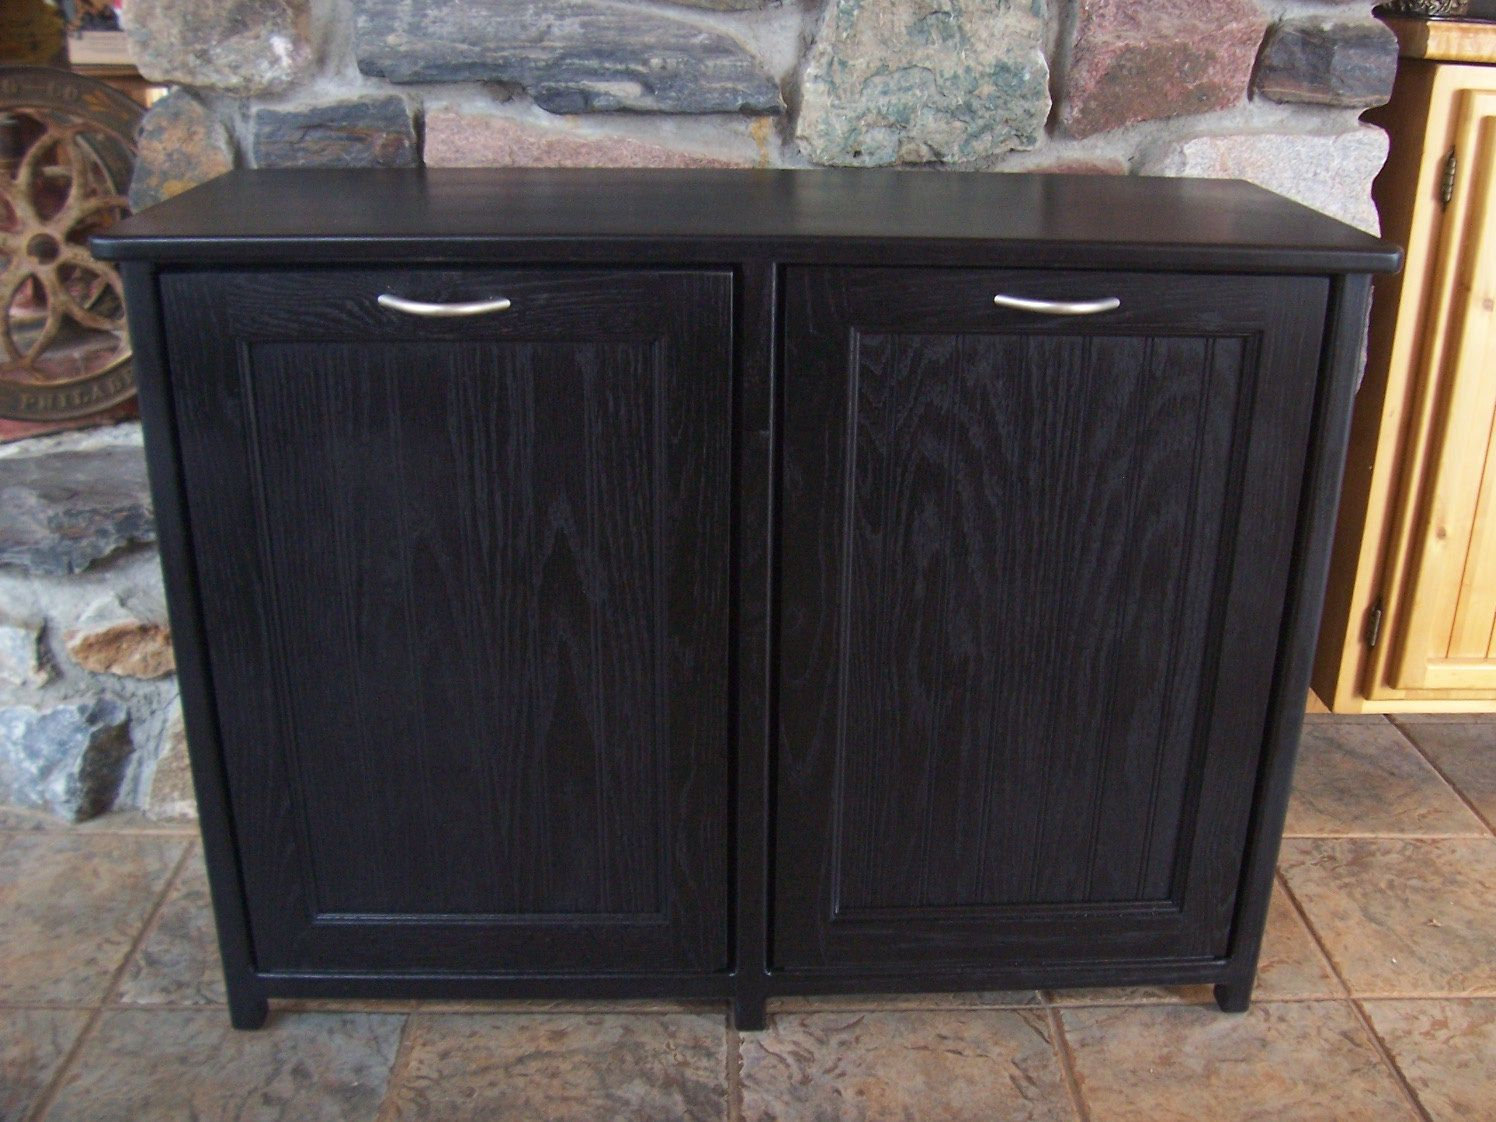 Wooden Kitchen Trash Containers New Black Painted Wood Double Trash Bin Cabinet Garbage